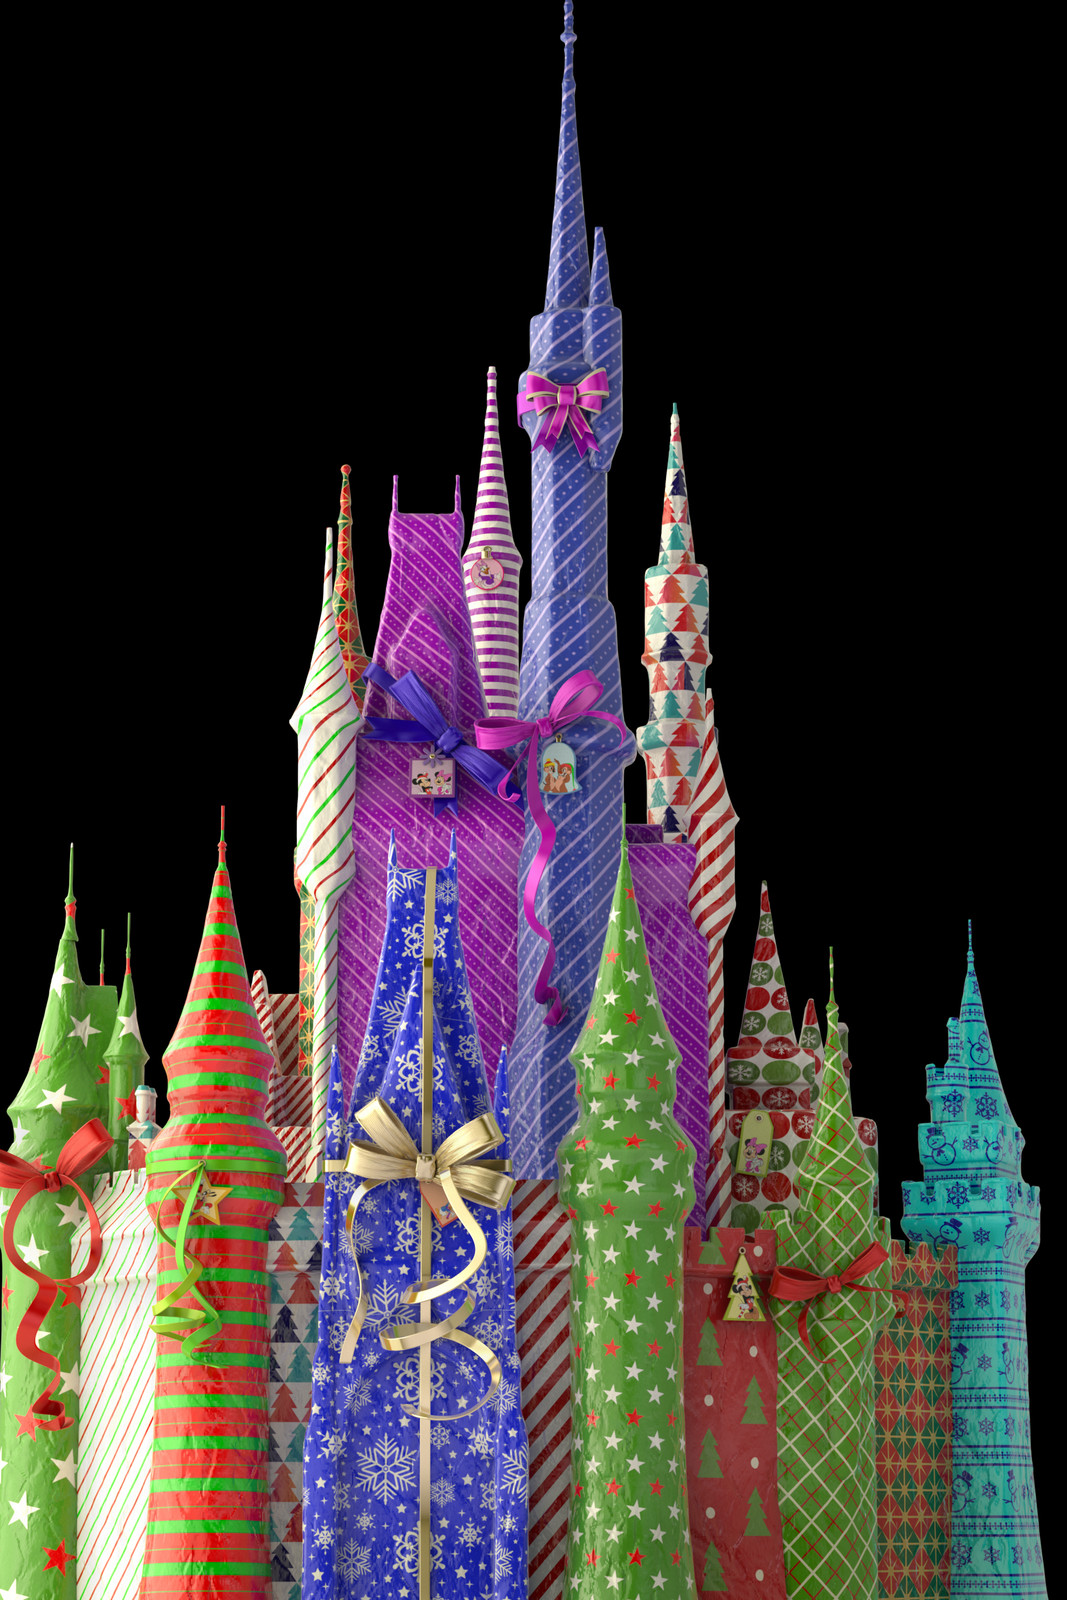 Gift wrapped Disney castle